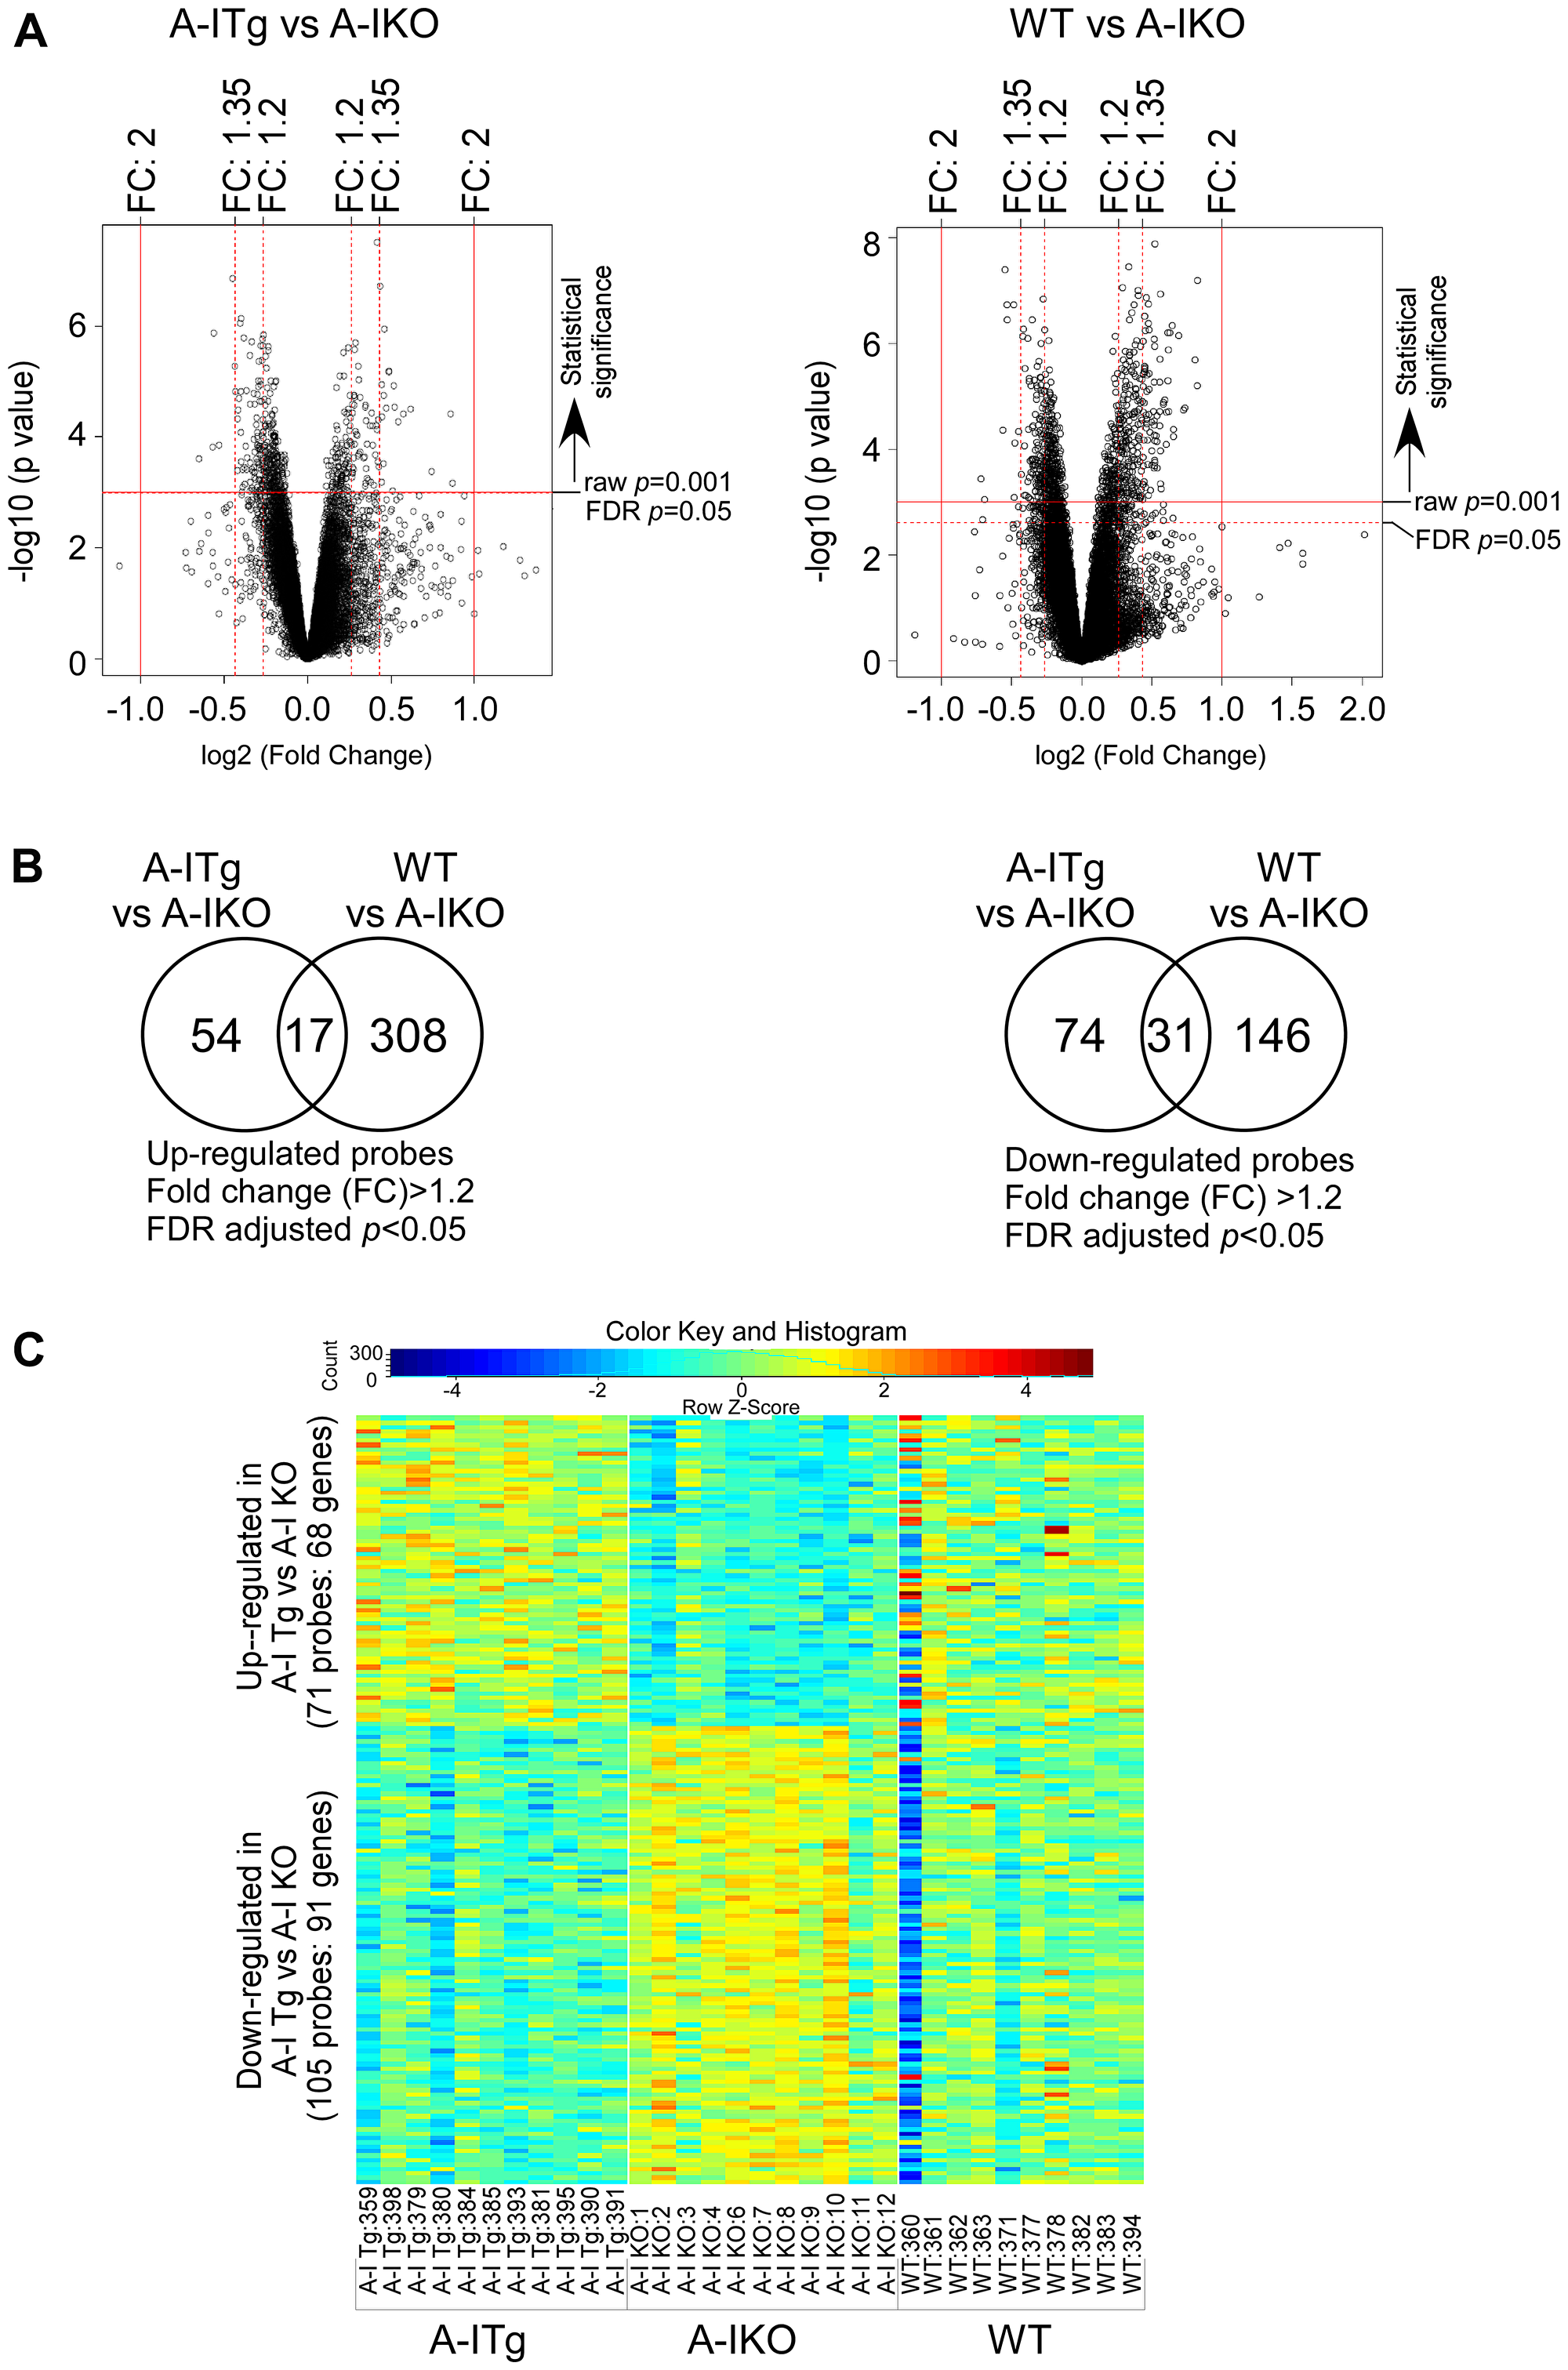 Identification of statistically significant transcripts from differential expression analyses.